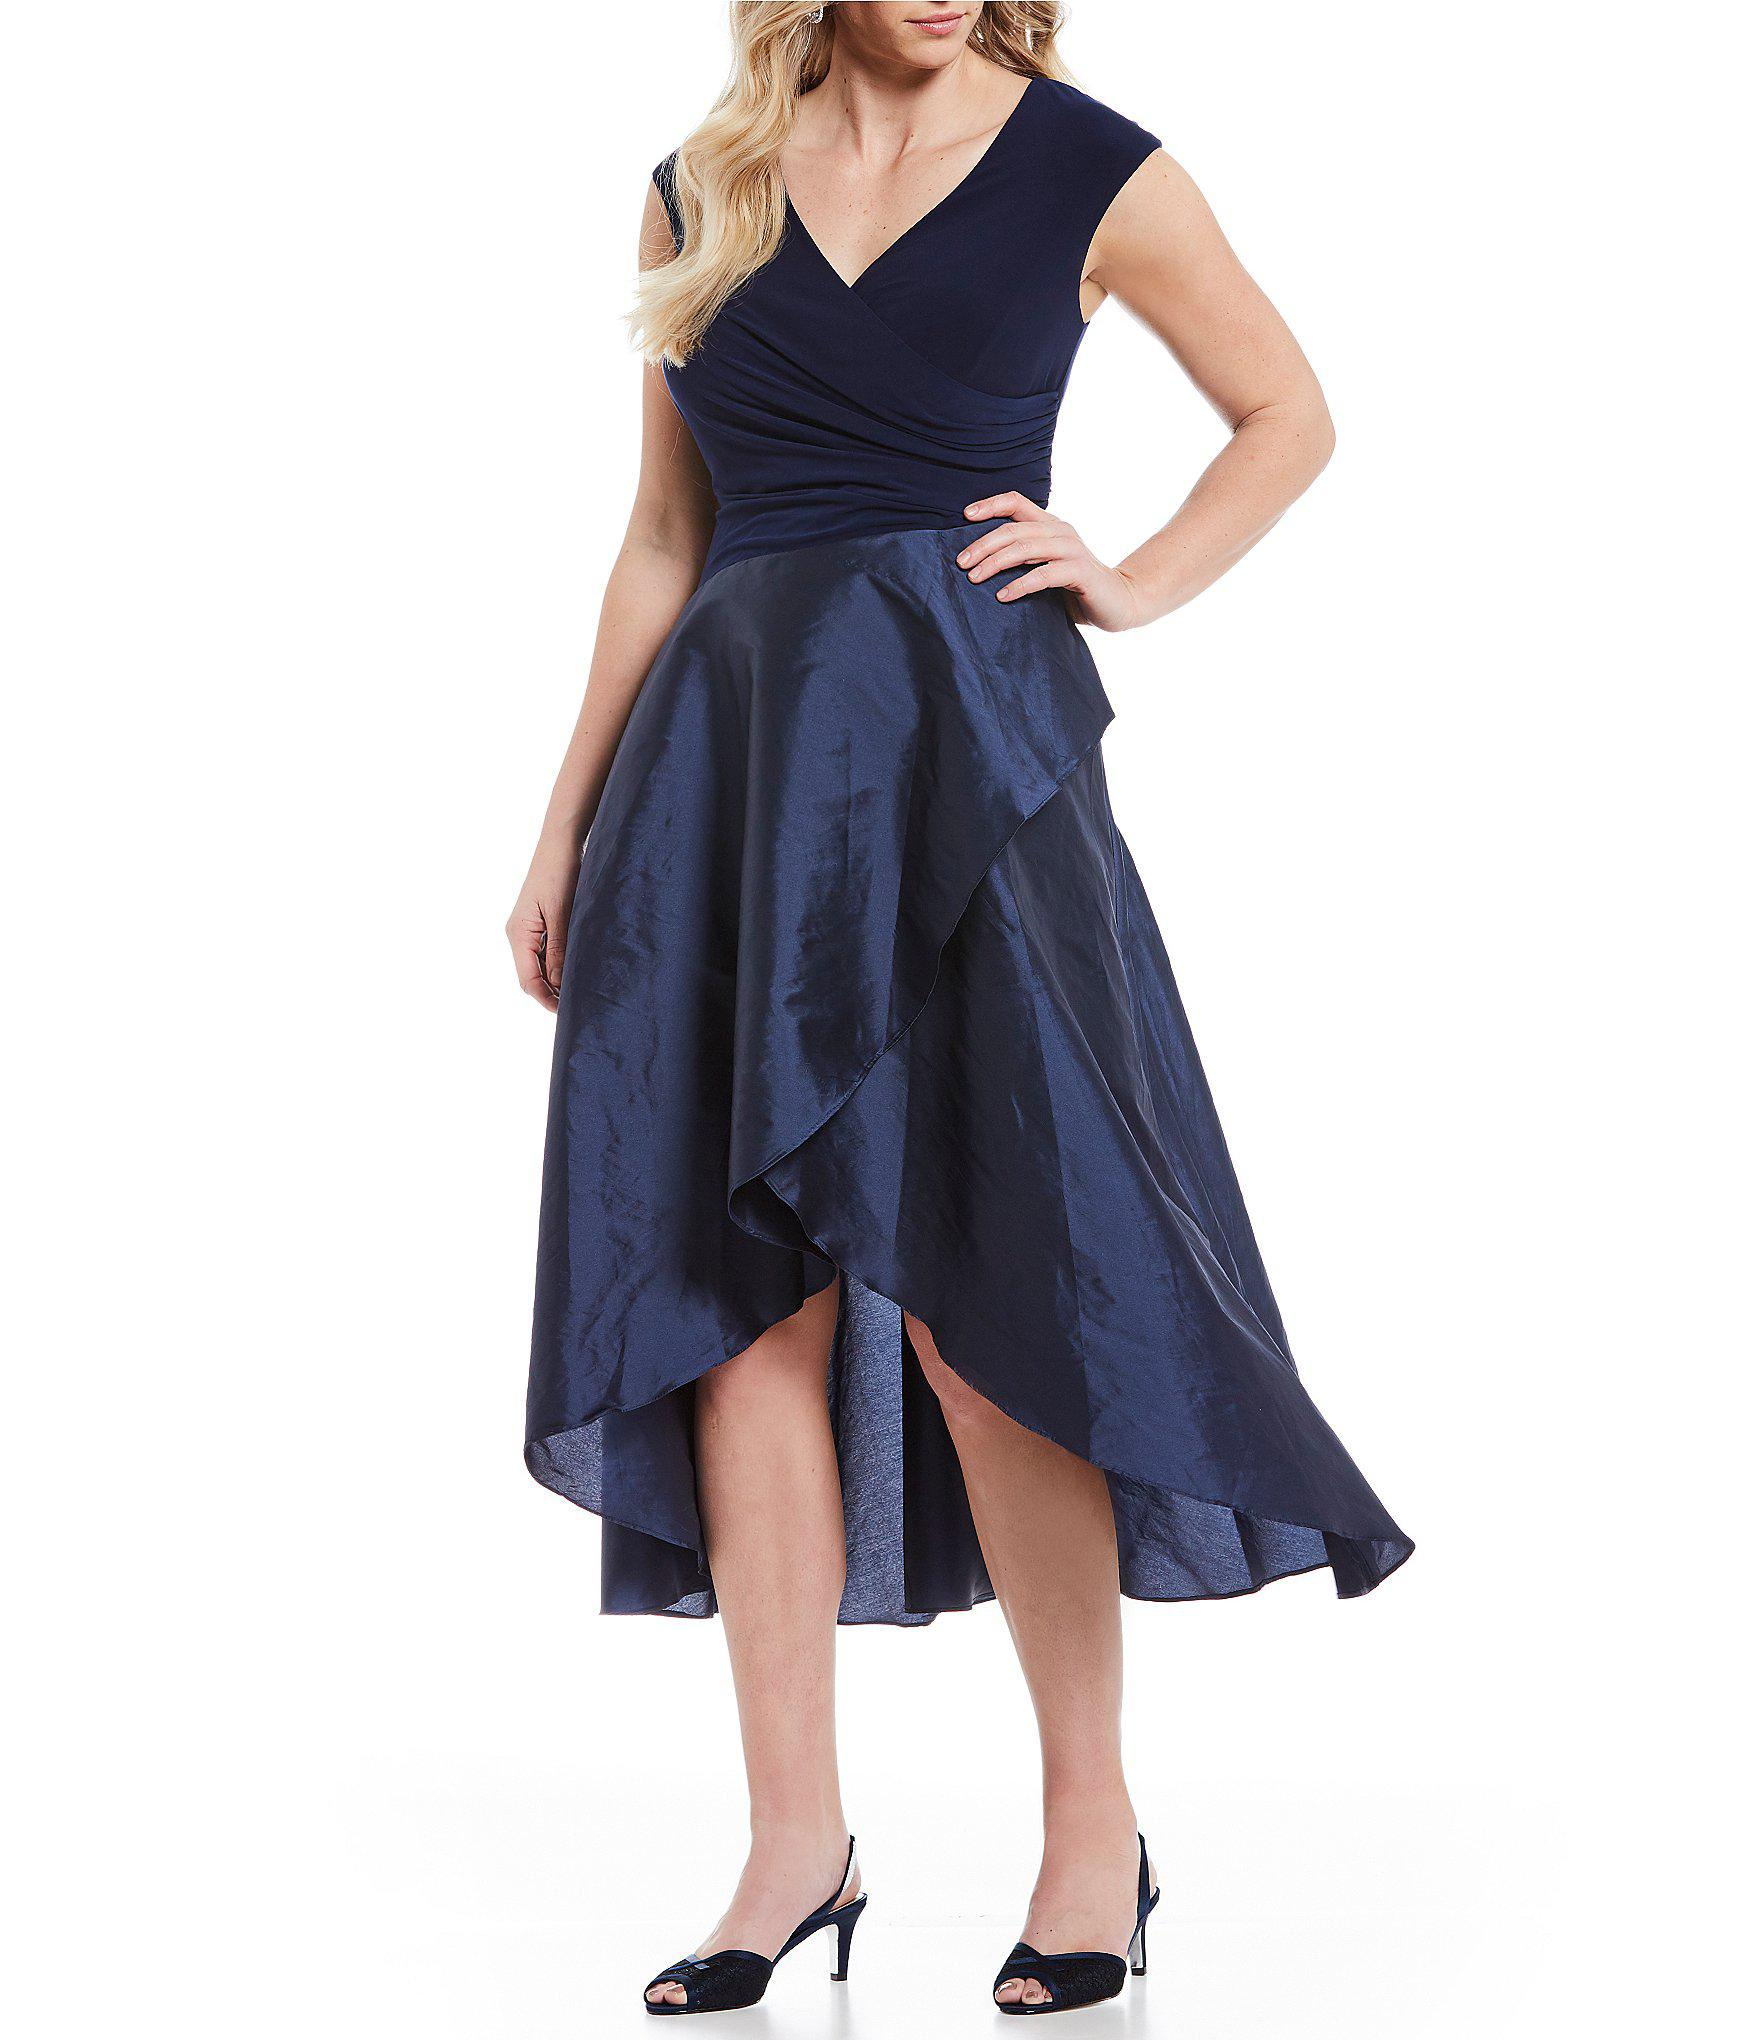 f715a53318e Lyst - Adrianna Papell Plus Size Surplice Cap Sleeve Hi-low Dress in ...